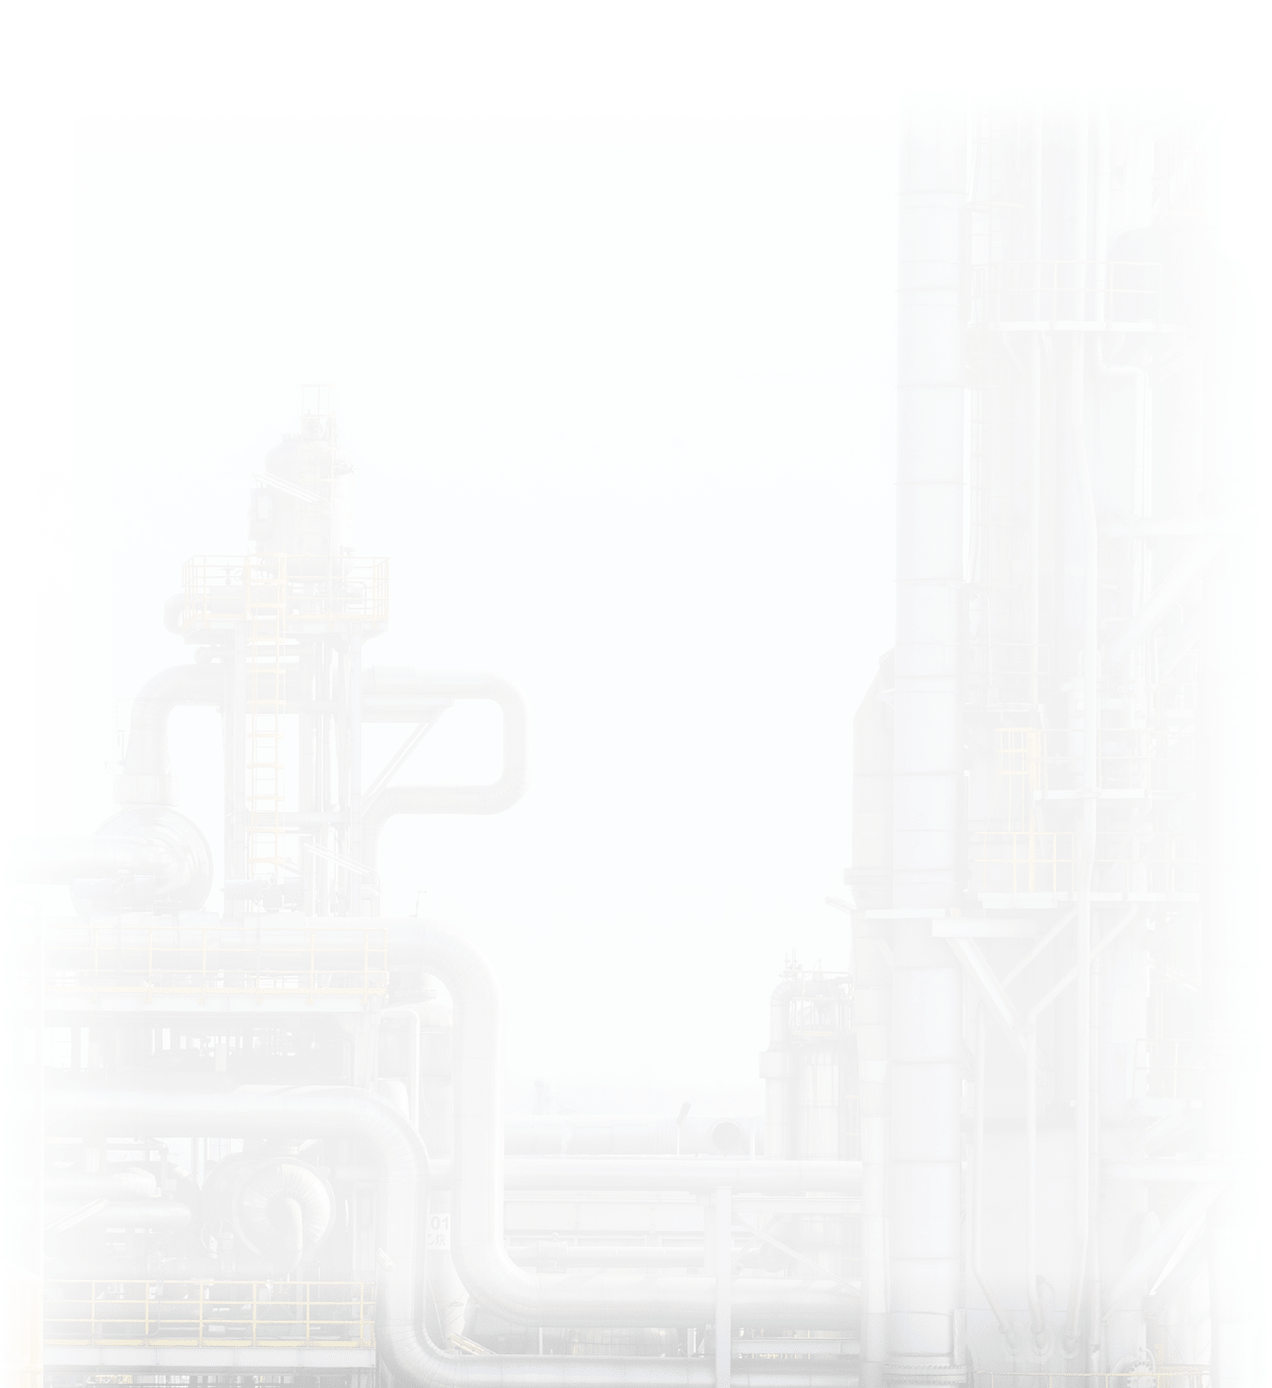 Background image of a Refinery